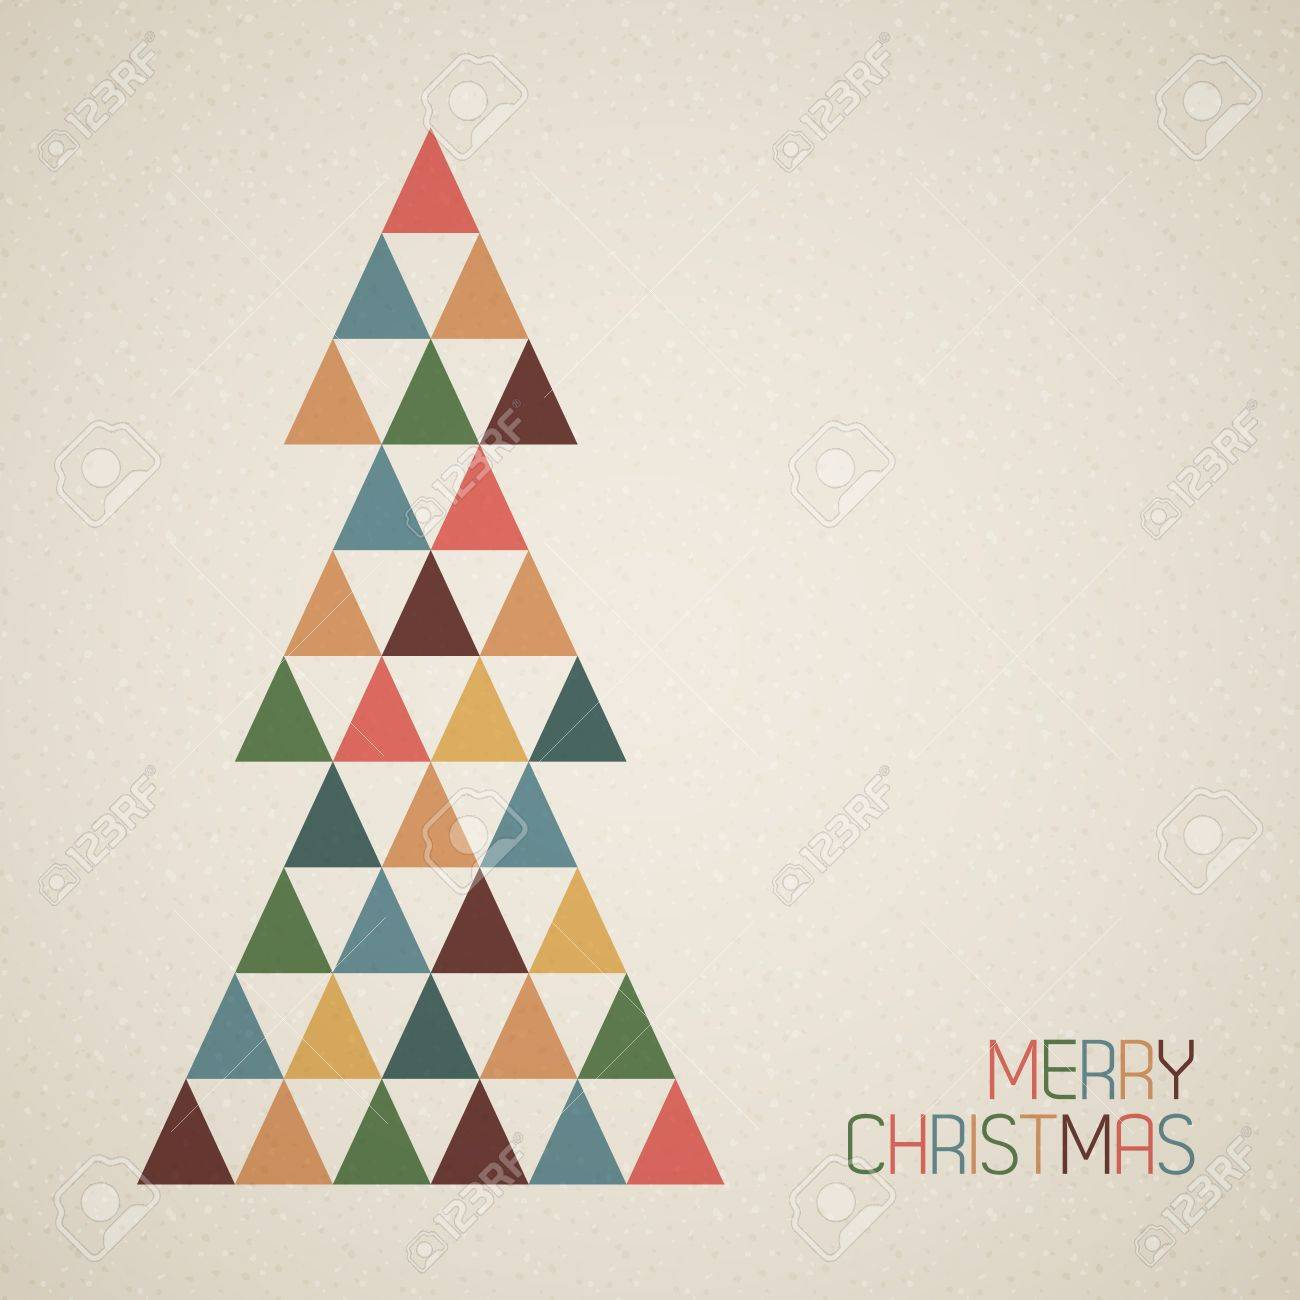 Vintage Retro Vector Grunge Christmas Tree Made From Triangles ...